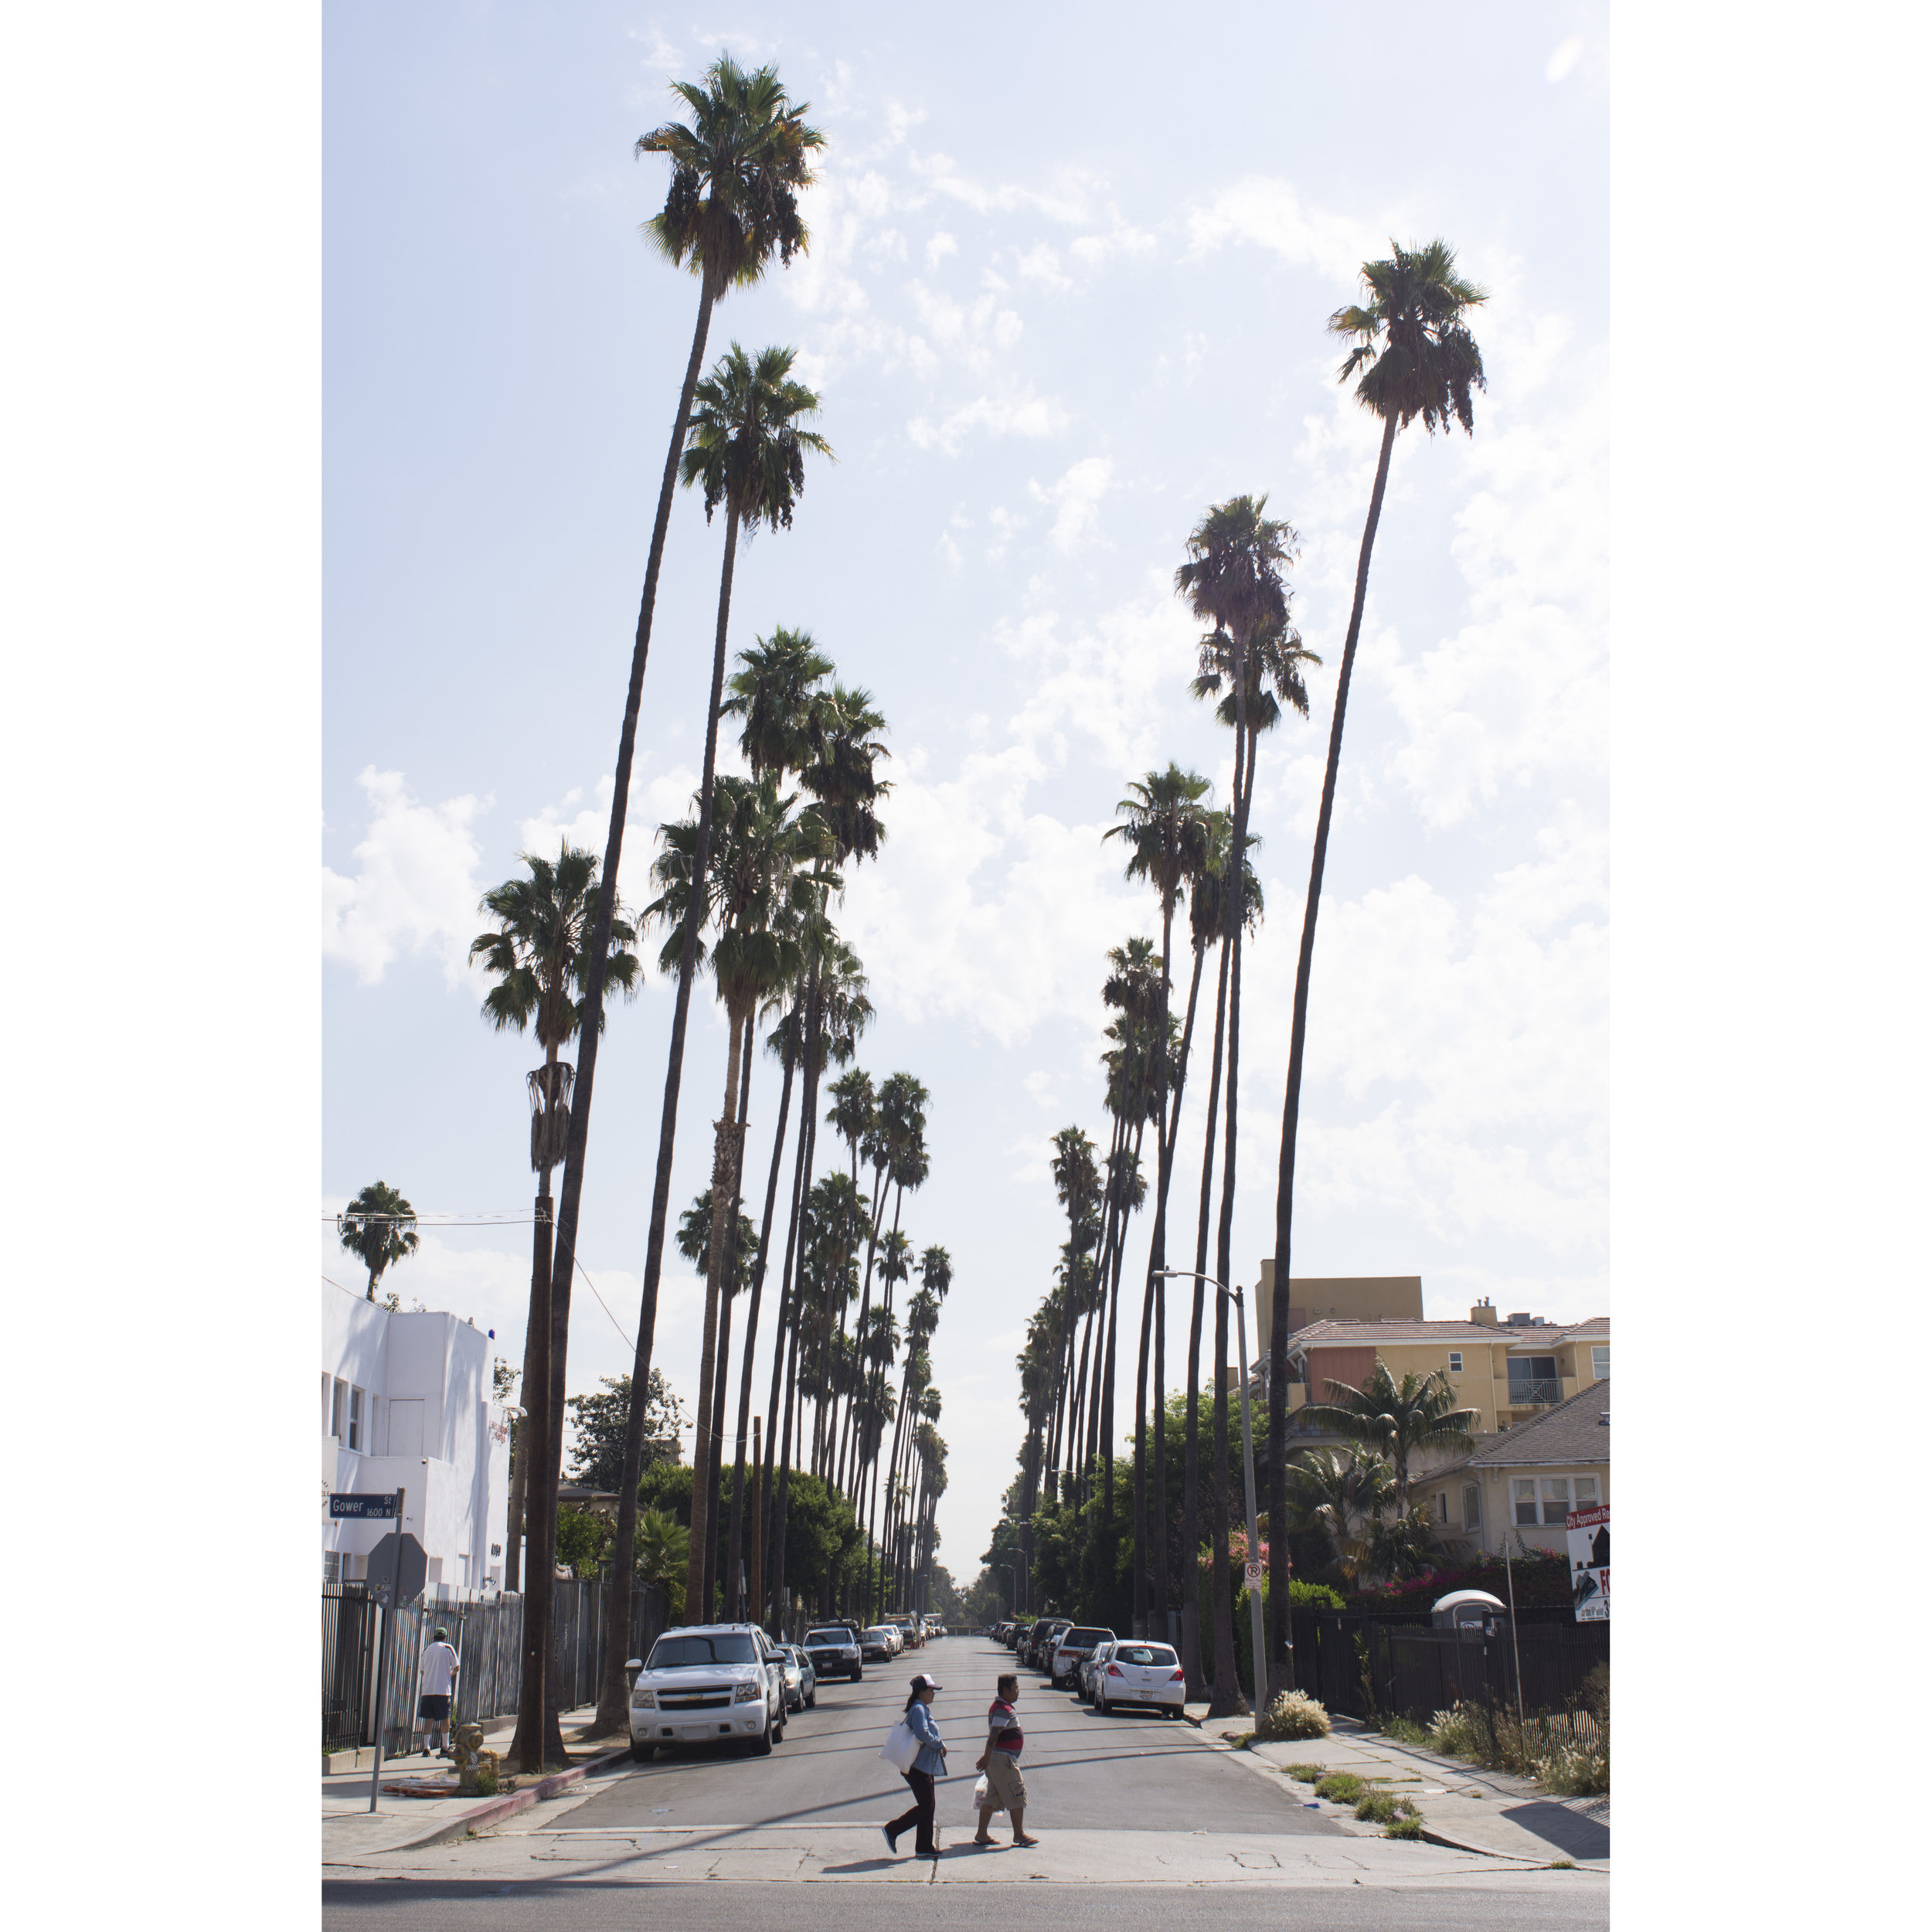 Gower Street and Carlton Way in Los Angeles, Calif.. Sept. 6, 2017.